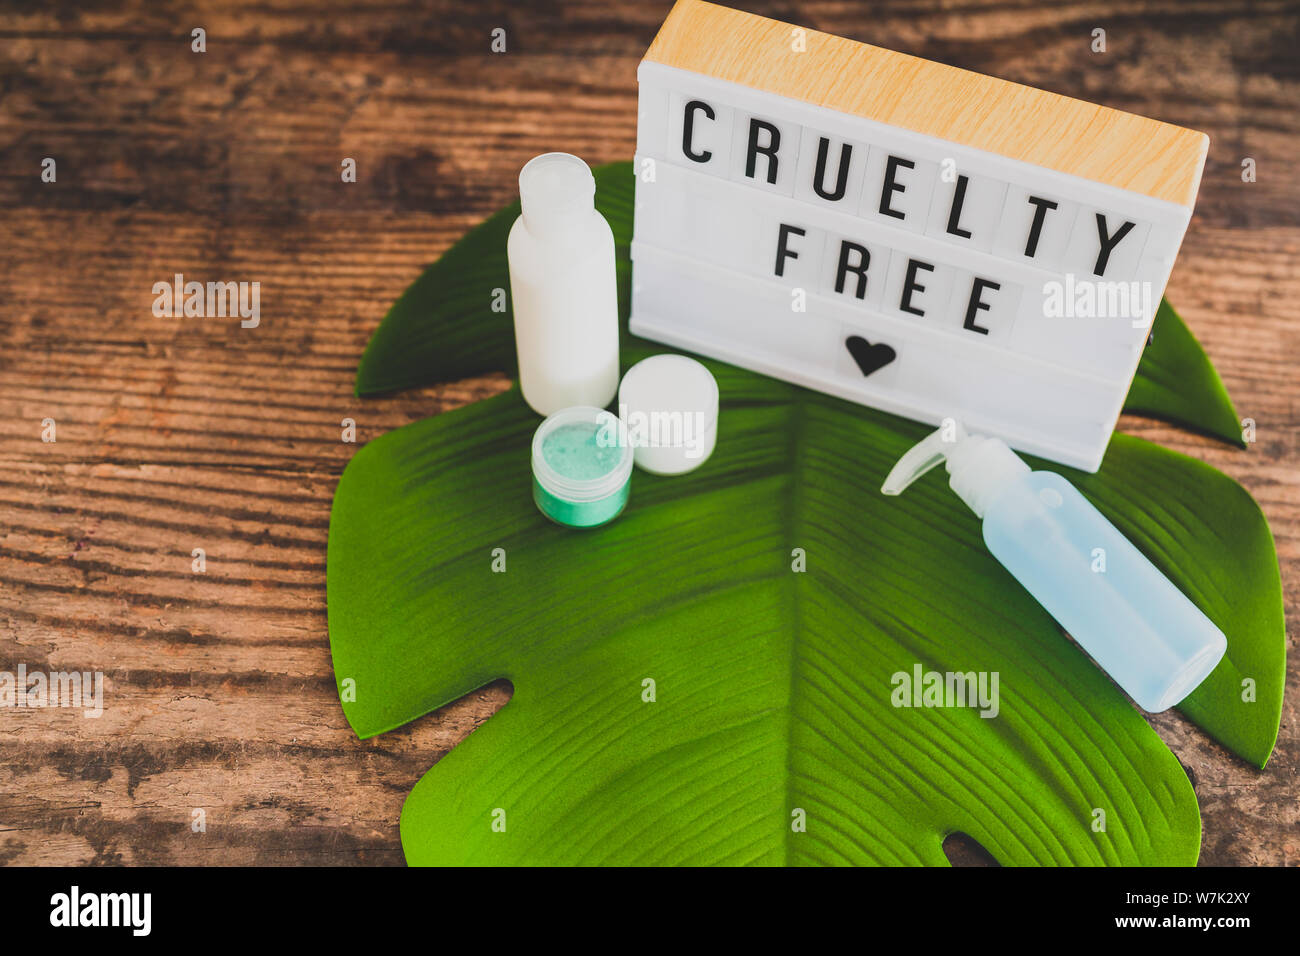 cruelty free message on lightbox with skincare products, concept of vegan products and ethics Stock Photo